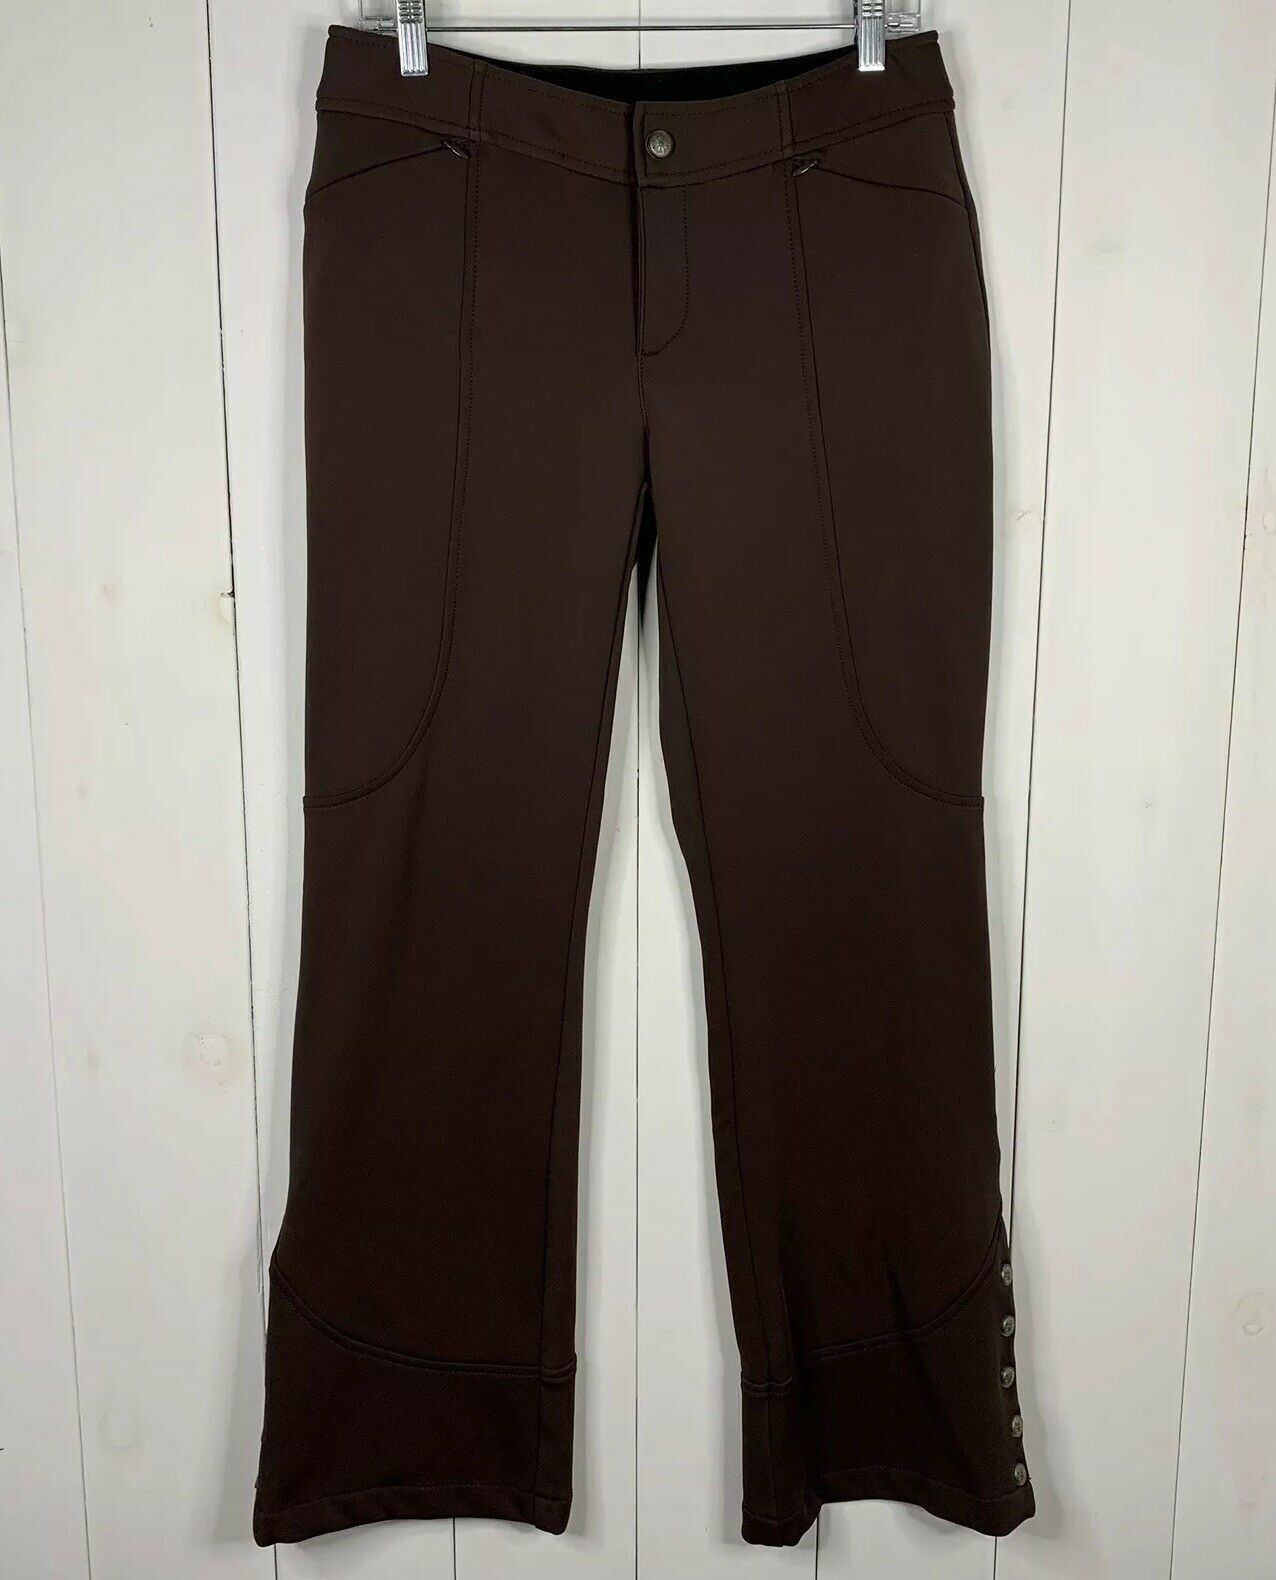 Athleta Brown Size 8  Snow Cruiser Fleece Lined Ski Snowboard Adjustable Pants  high-quality merchandise and convenient, honest service